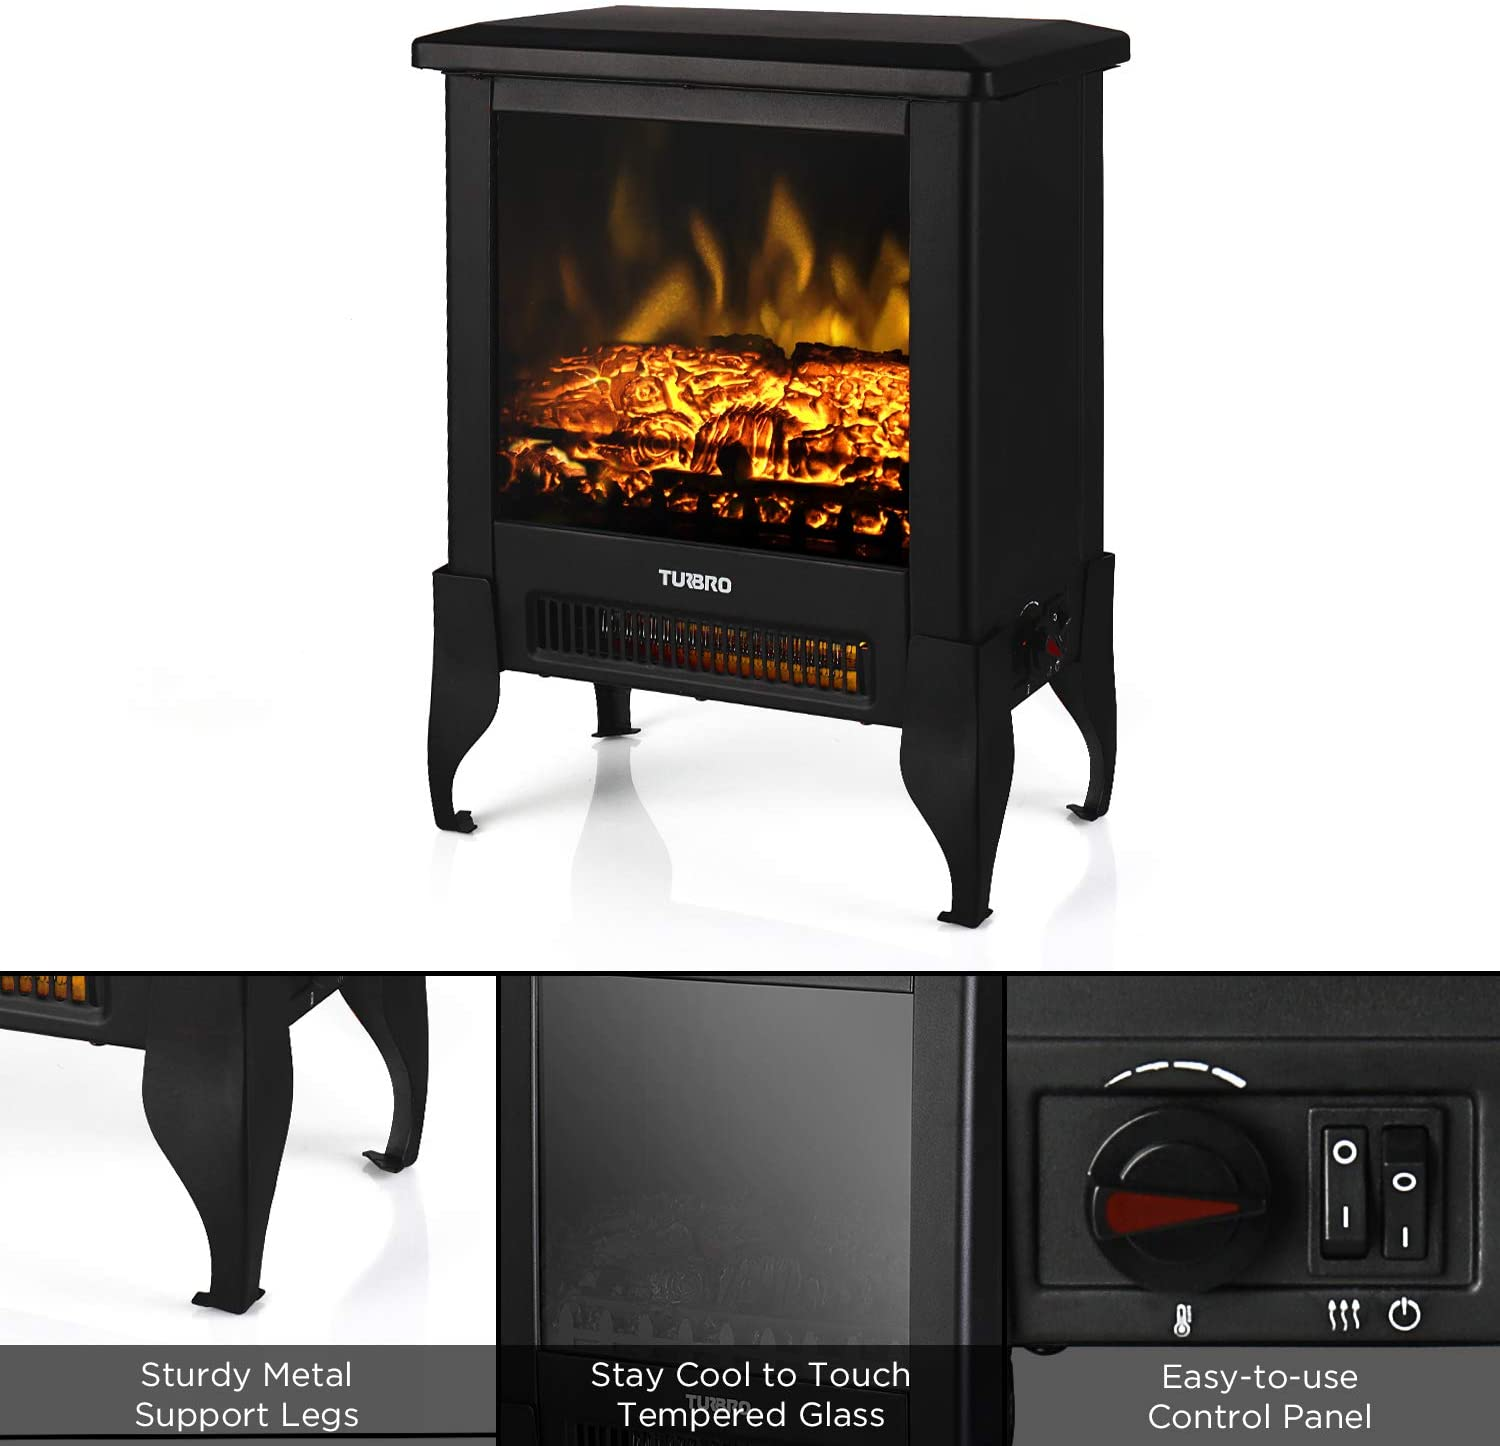 17 1400W TURBRO Suburbs TS17 Compact Electric Fireplace Heater Freestanding Fireplace Stove with Realistic Flame CSA Certified Overheating Safety Protection for Small Spaces